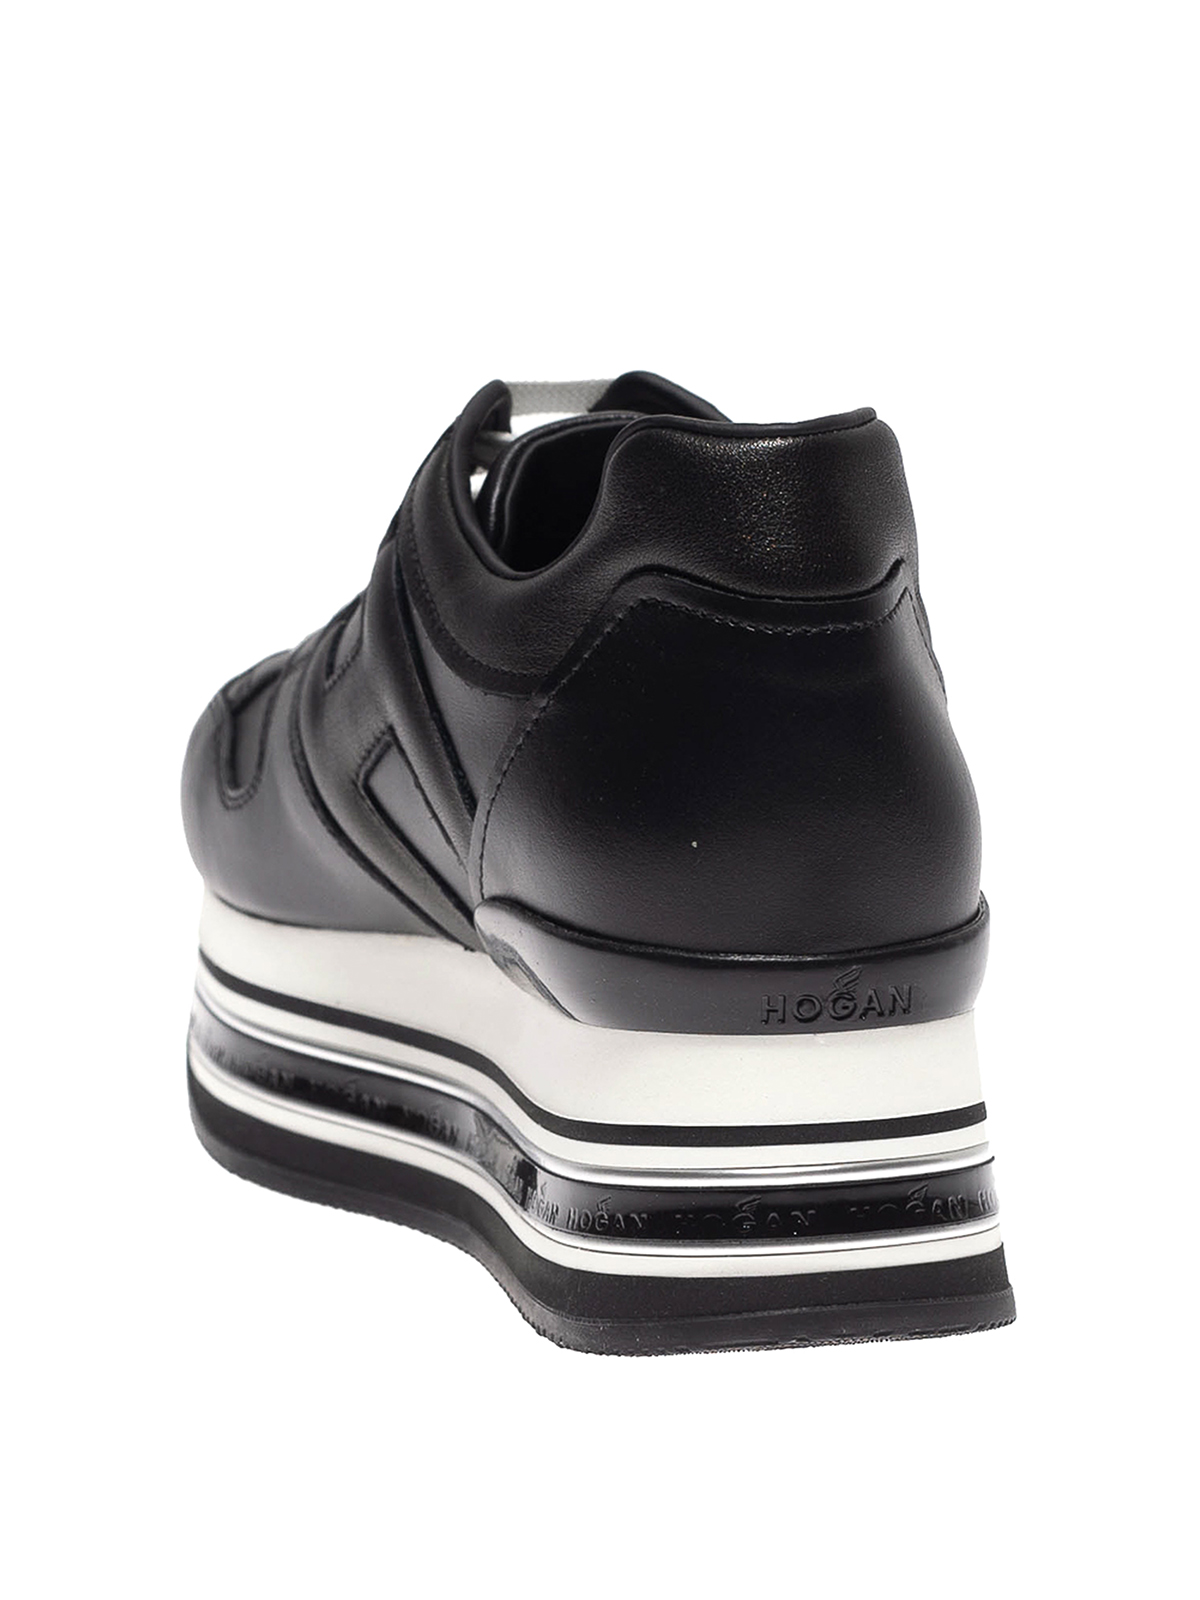 Trainers Hogan - Maxi H222 black leather sneakers - HXW5030T548N7XB999